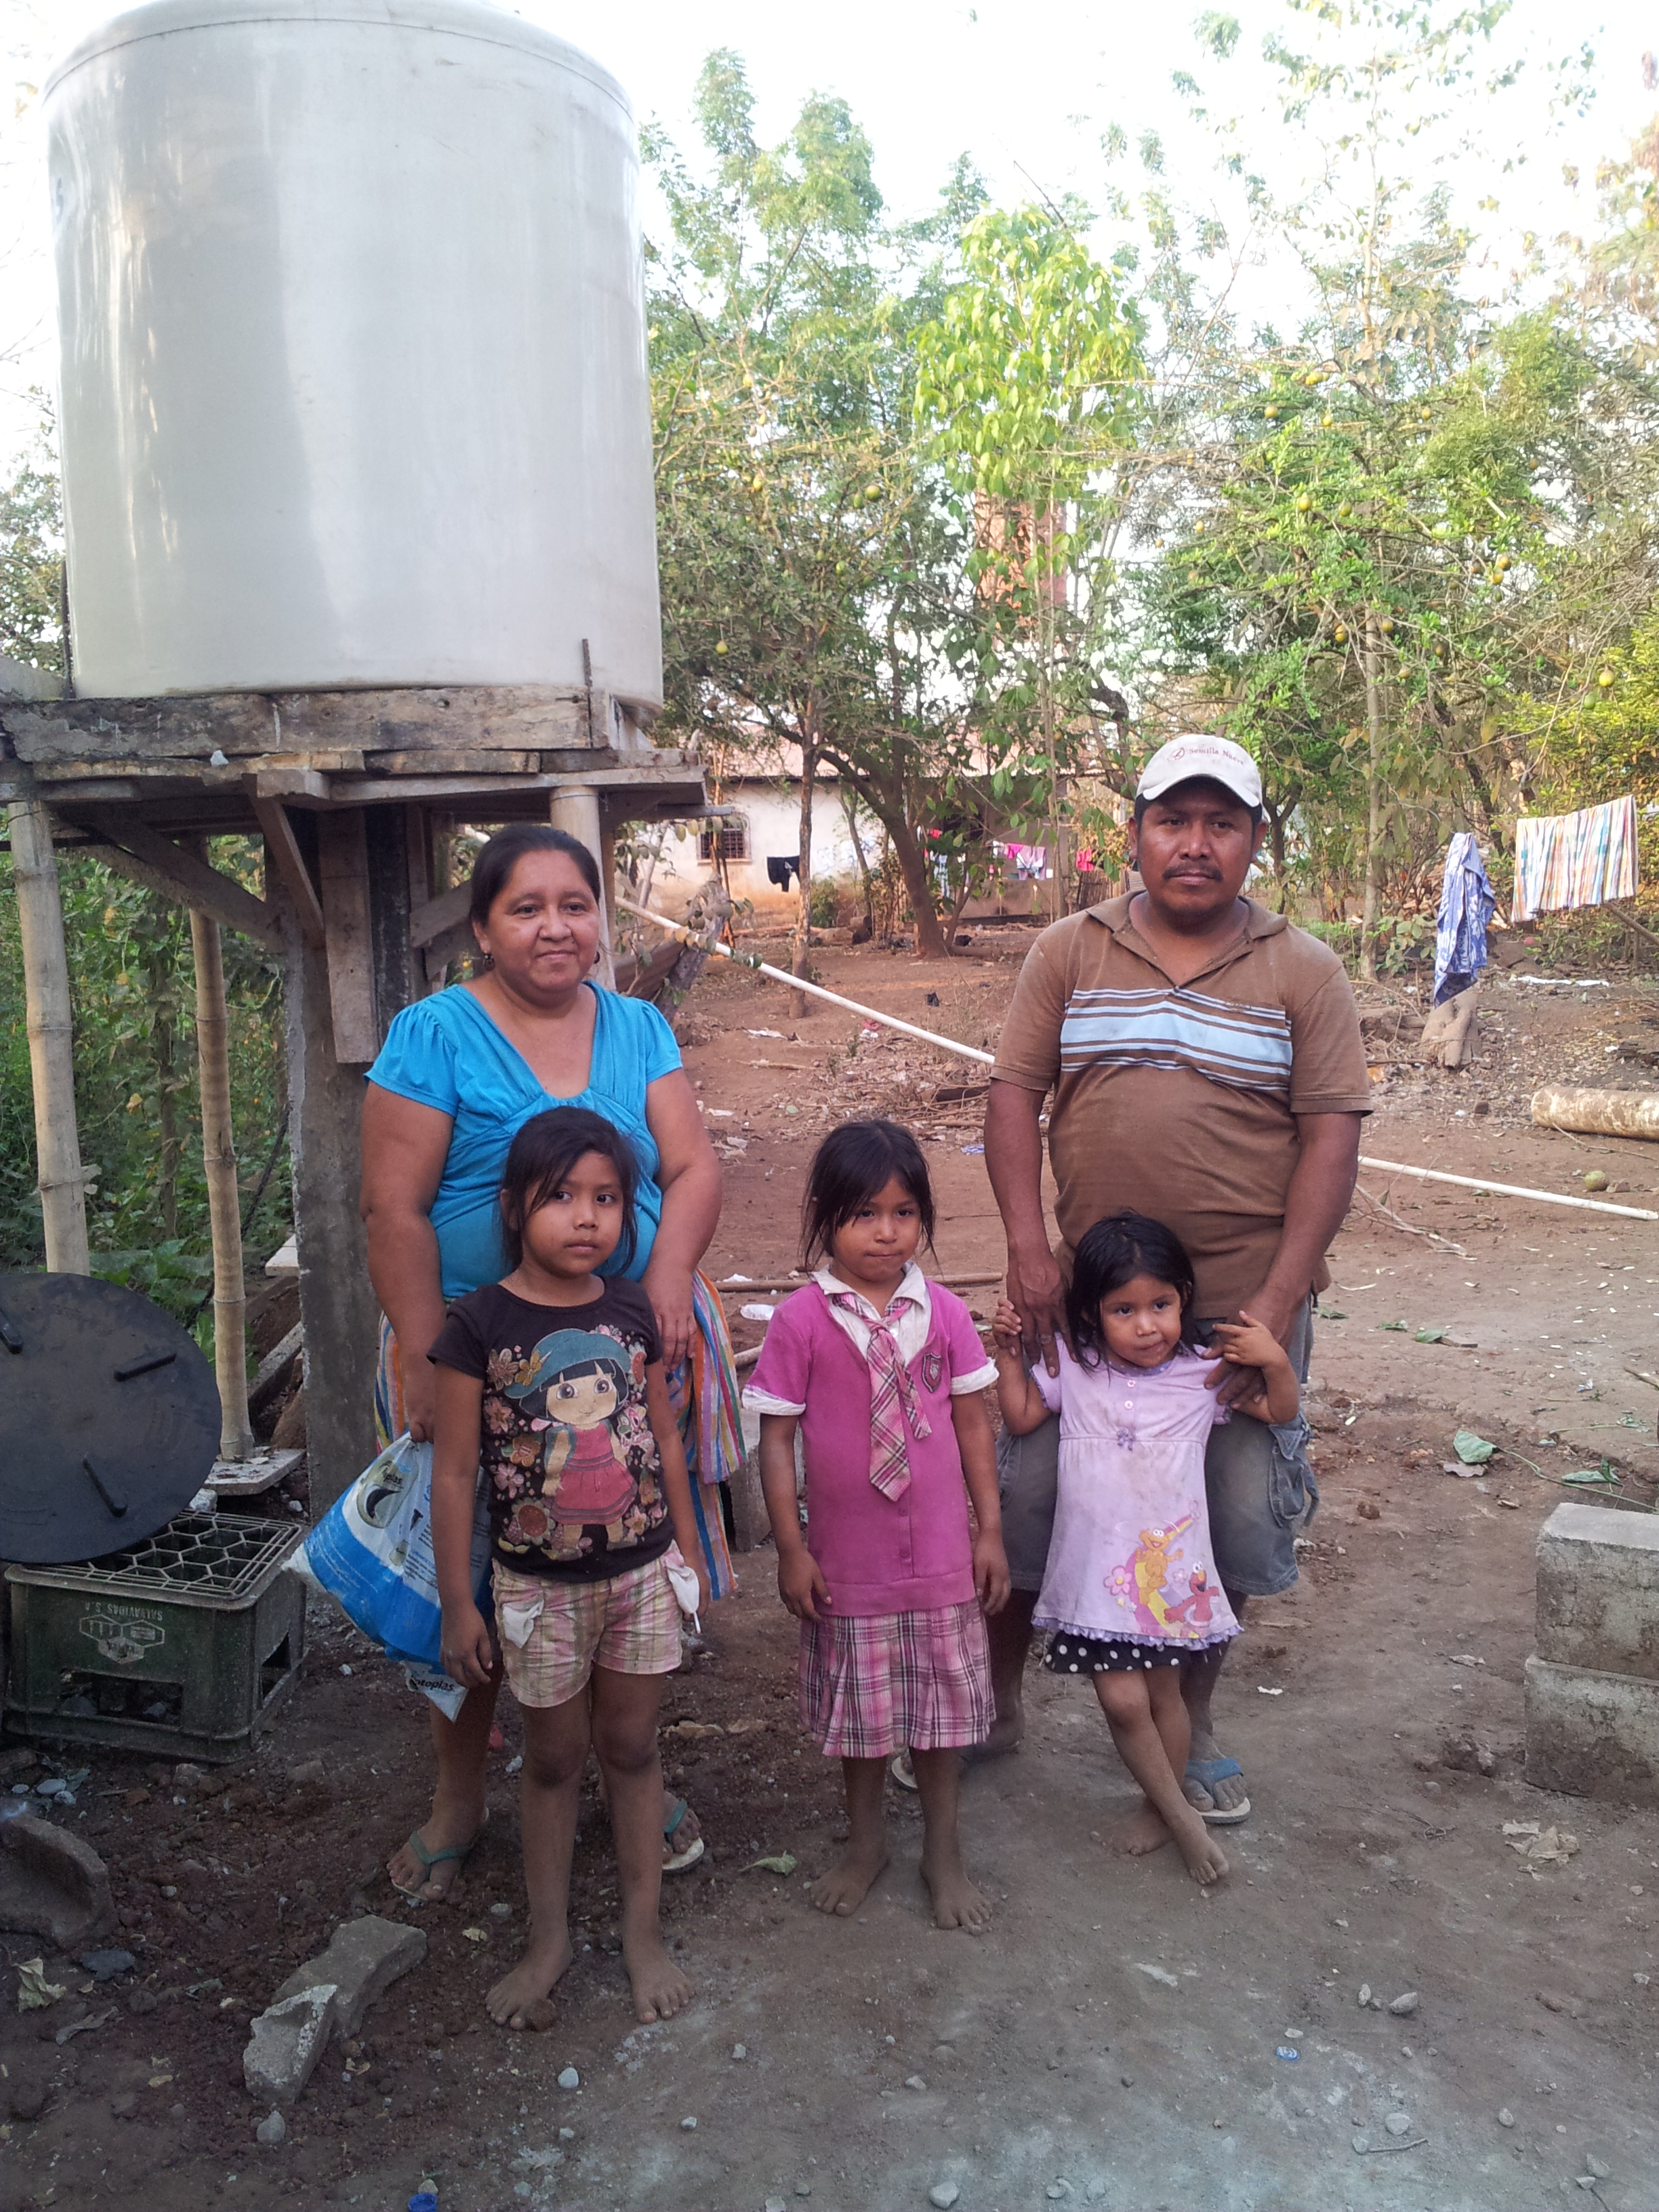 Irma Gonon and her family use the water storage system behind them to irrigate their crops and provide water for their home. Photo: Elsa Tesfay